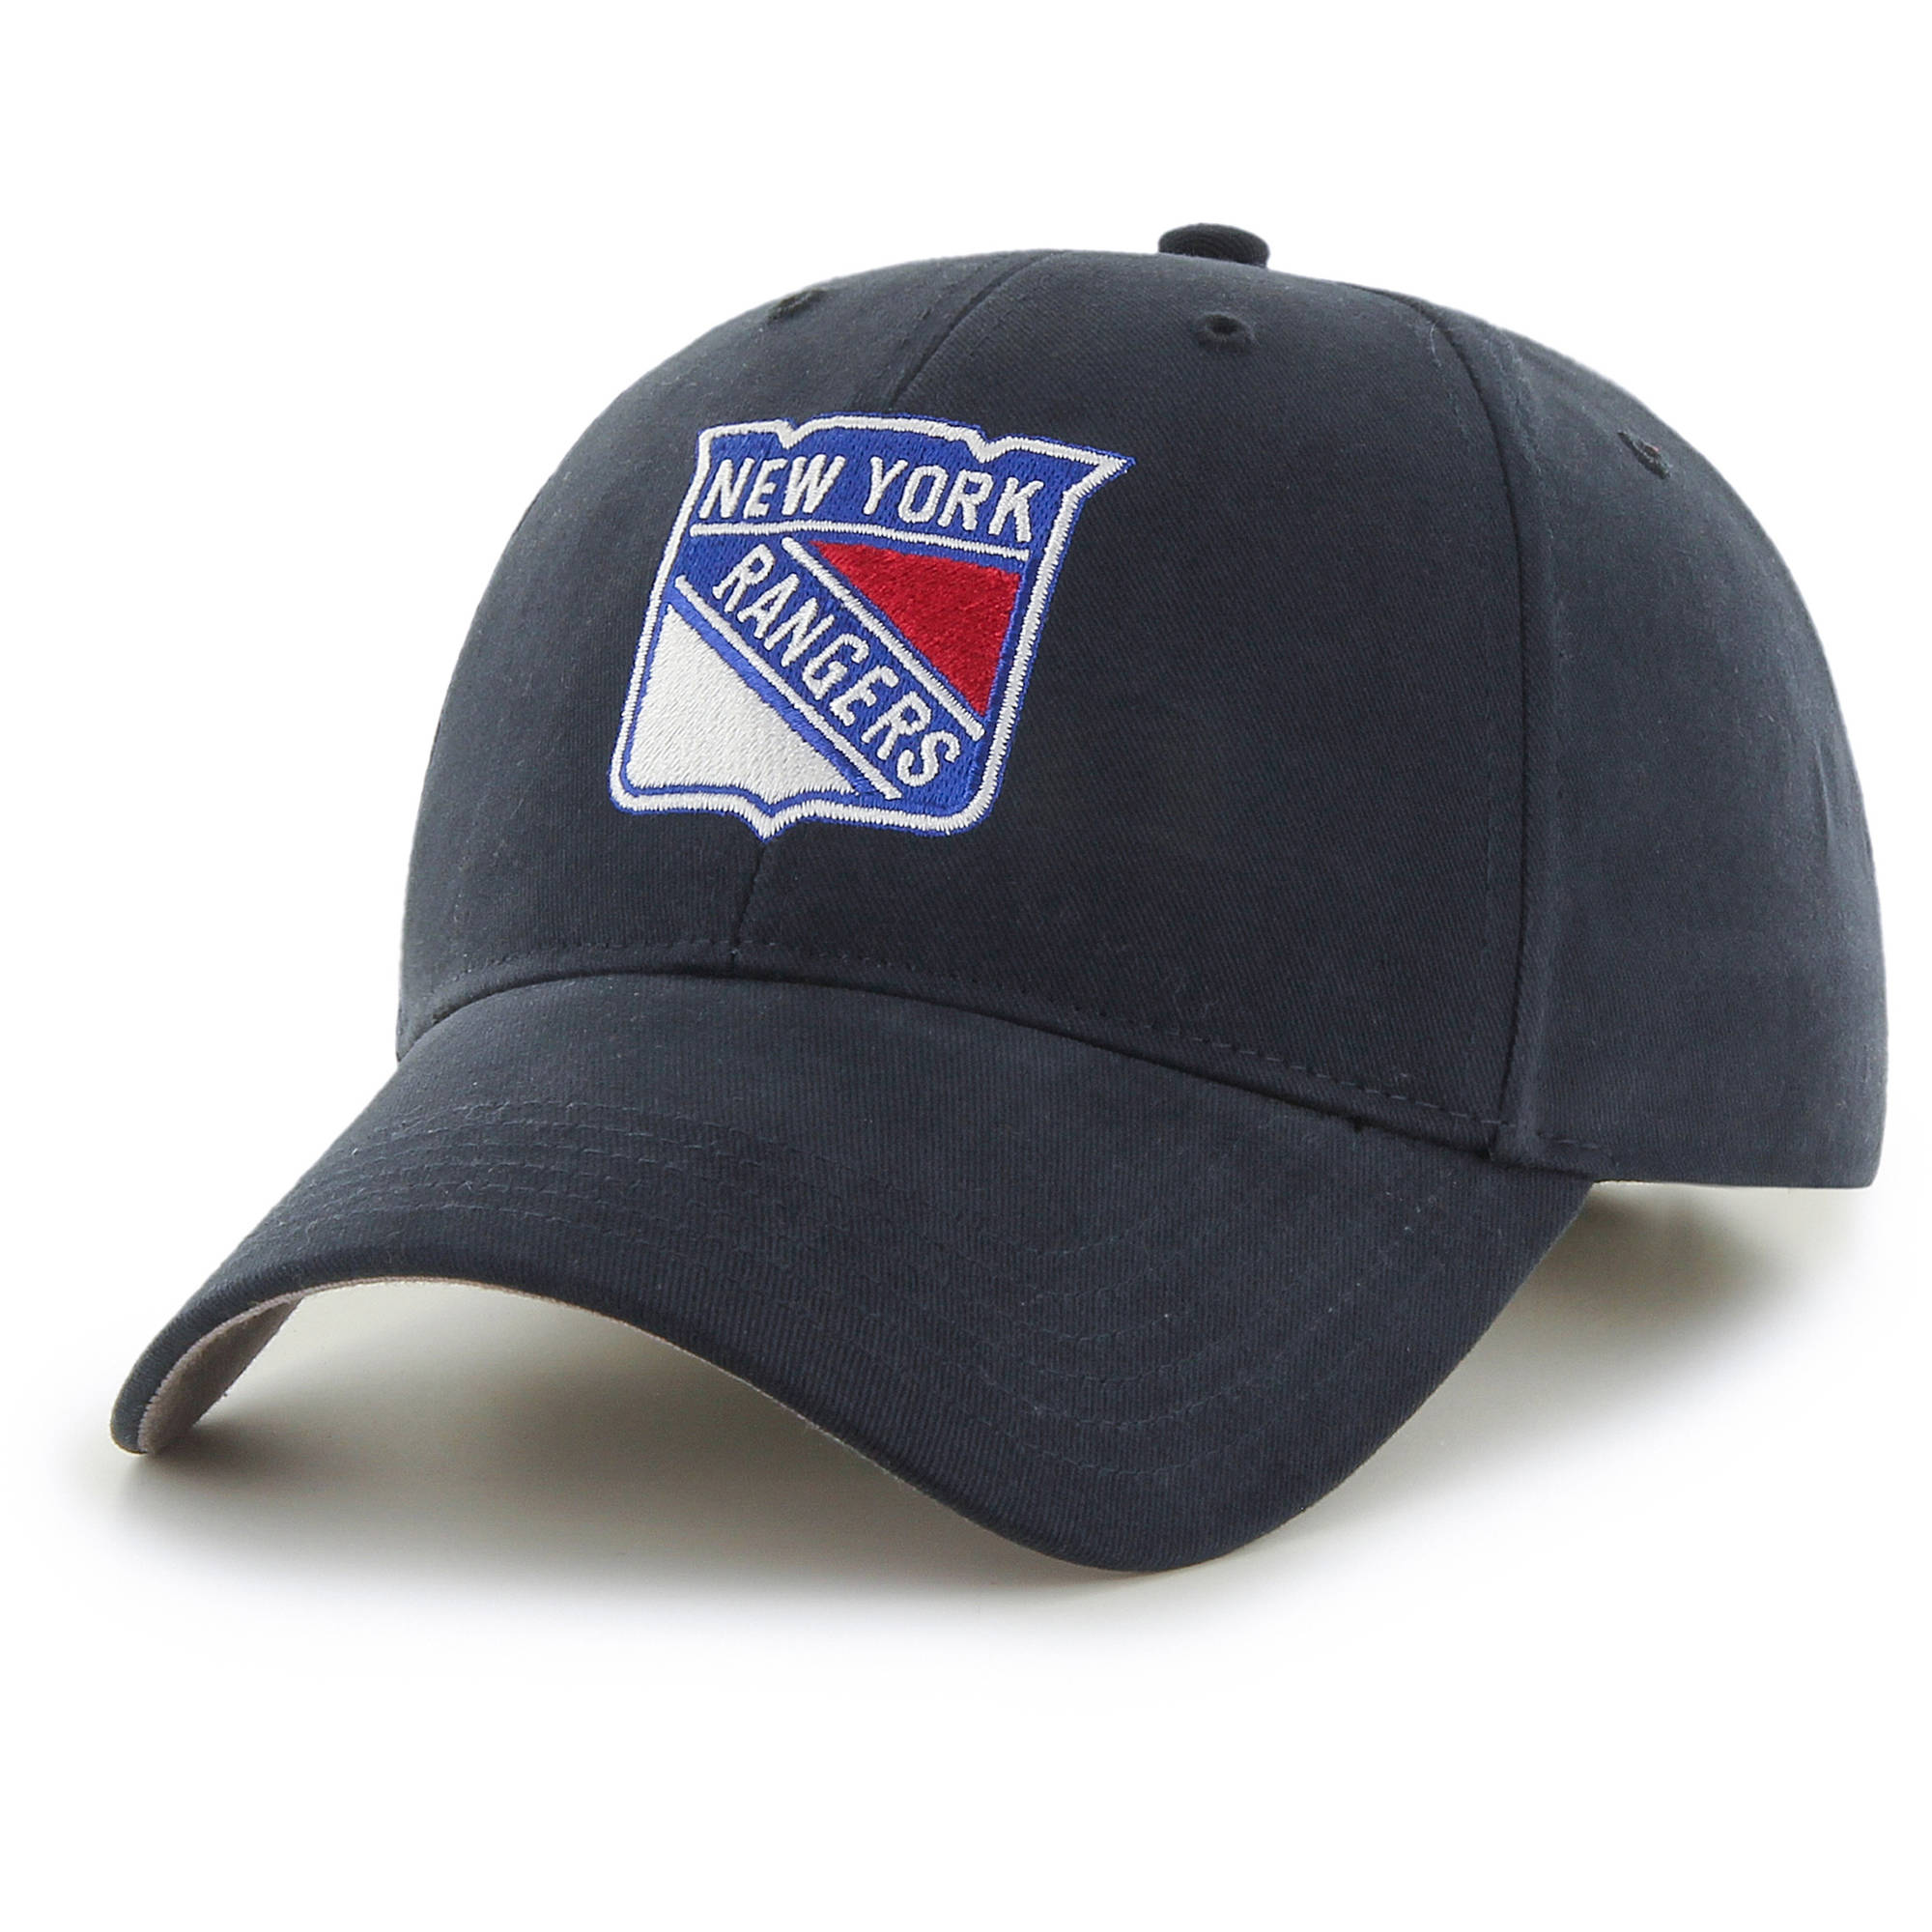 NHL New York Rangers Basic Cap / Hat by Fan Favorite